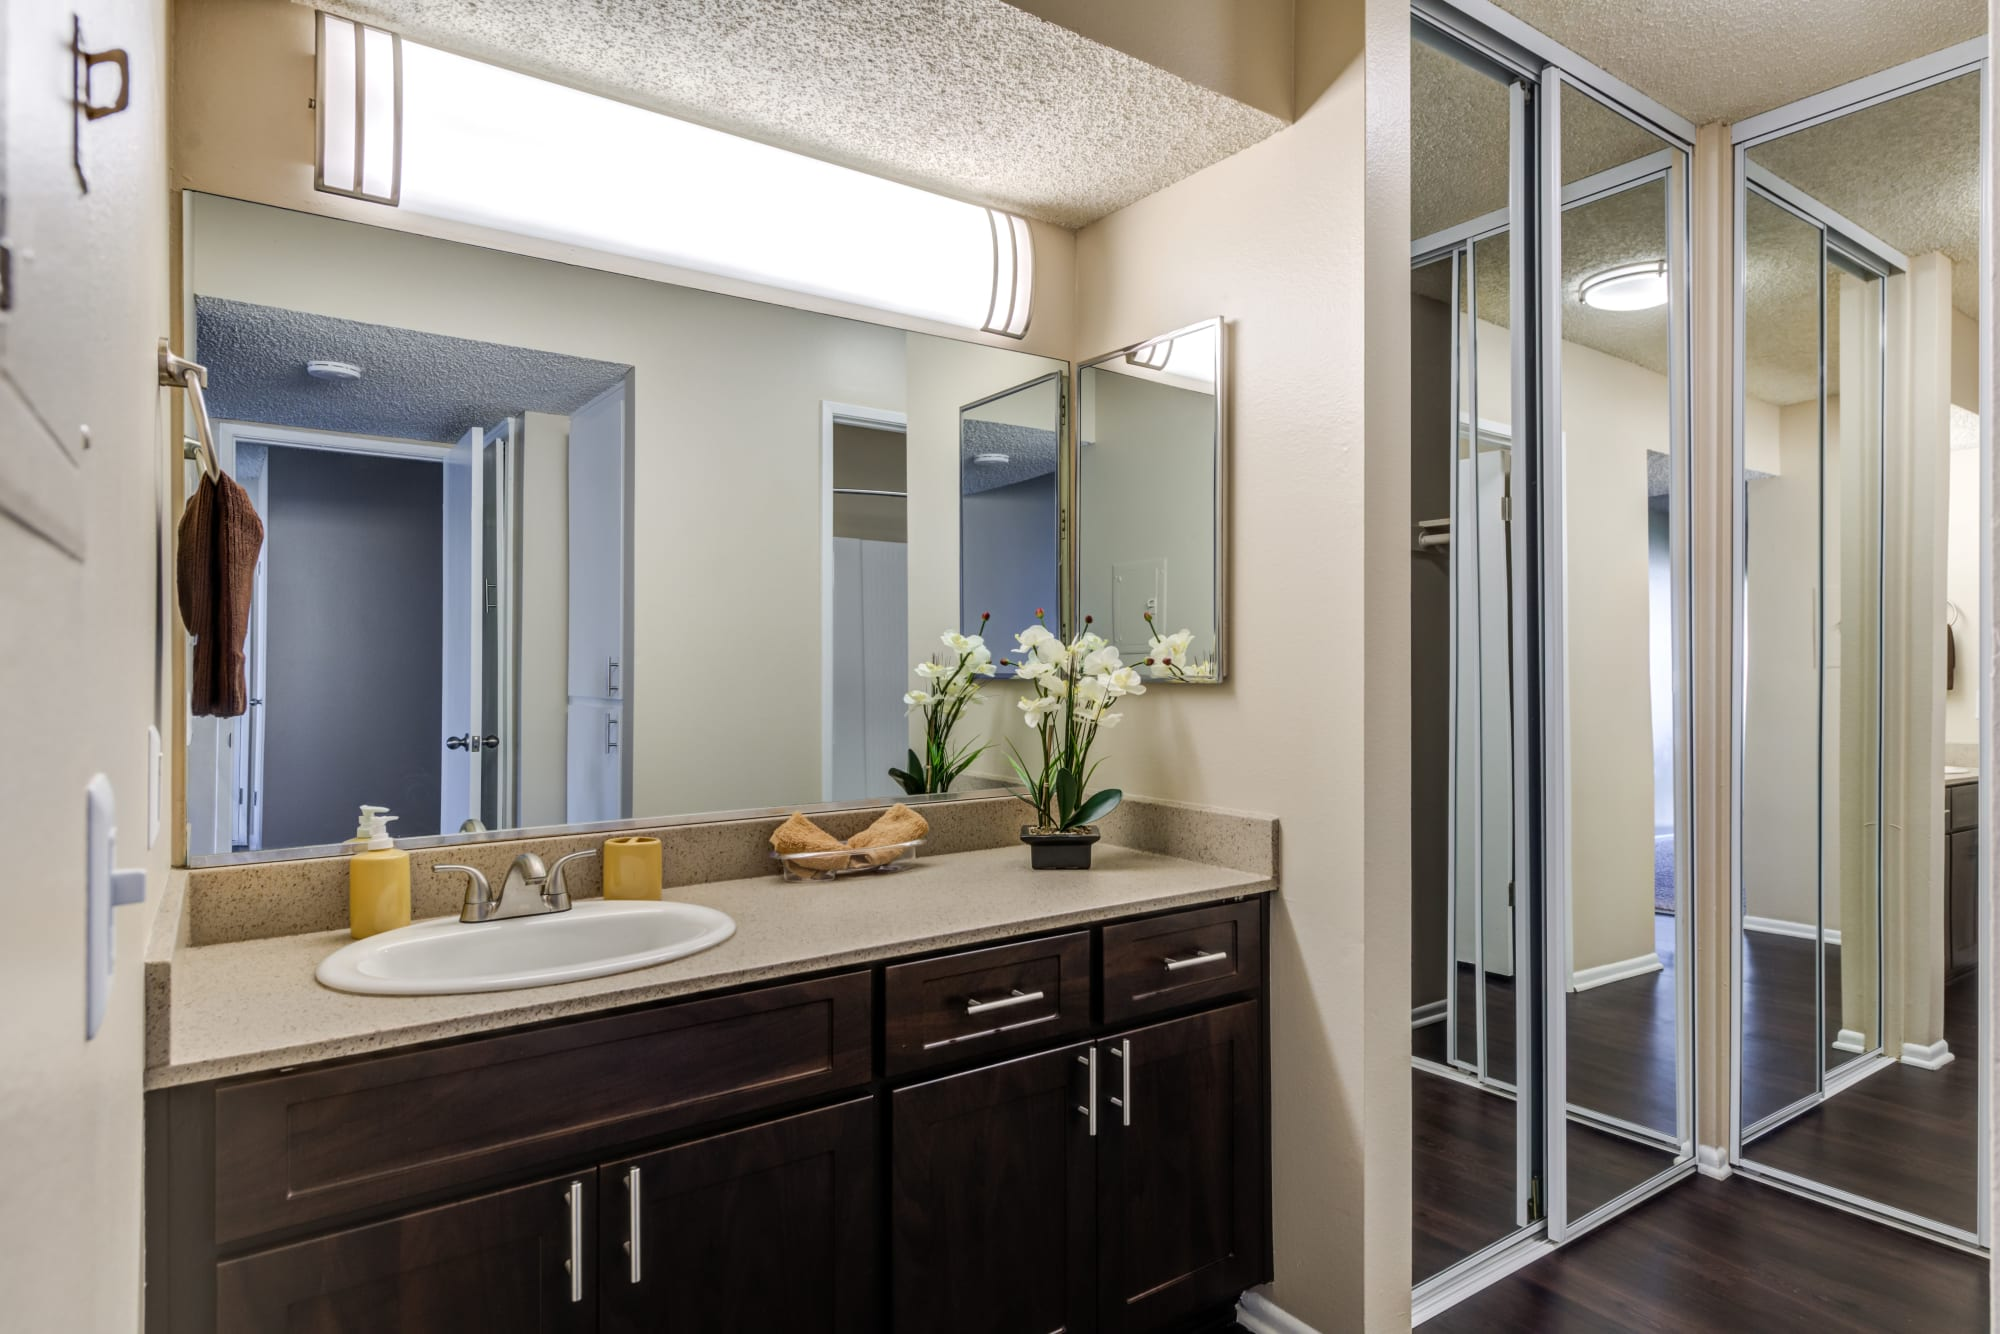 A renovated bathroom with brown cabinets, a large vanity and a mirrored closet door at Kendallwood Apartments in Whittier, California